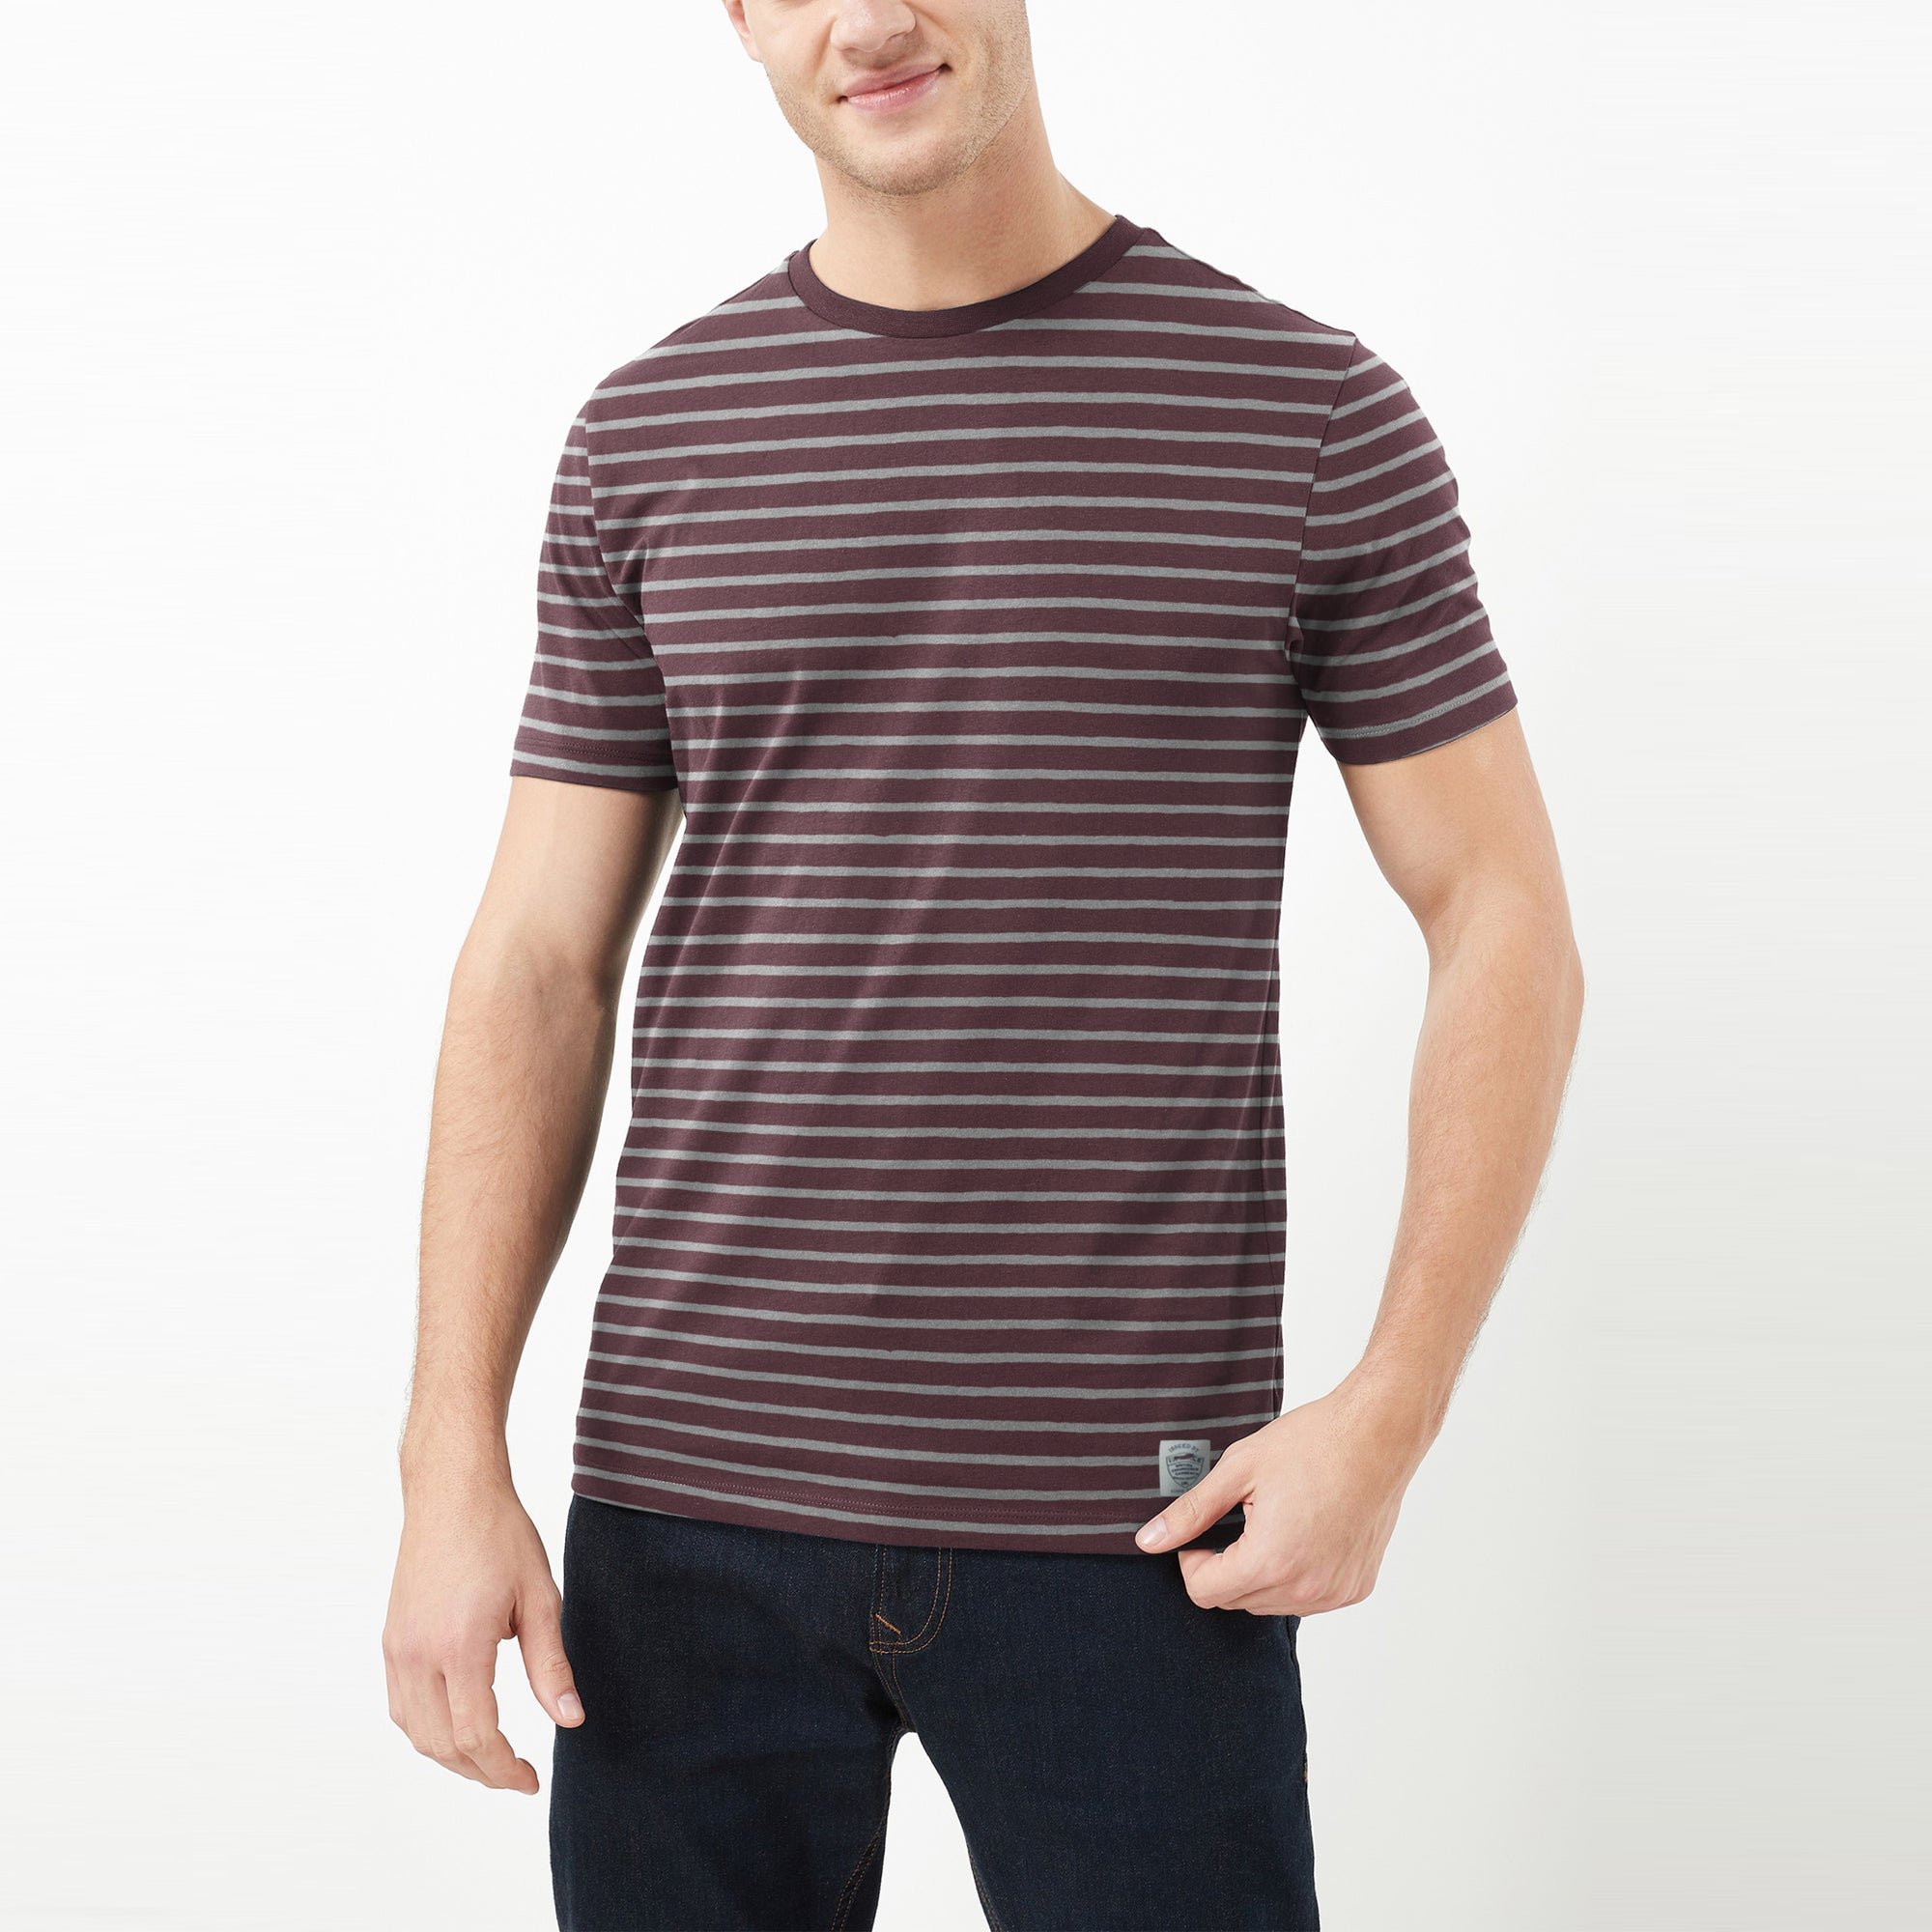 Fat Face Crew Neck Half Sleeve Tee Shirt For Men-Maroon & Grey Stripe-BE8121